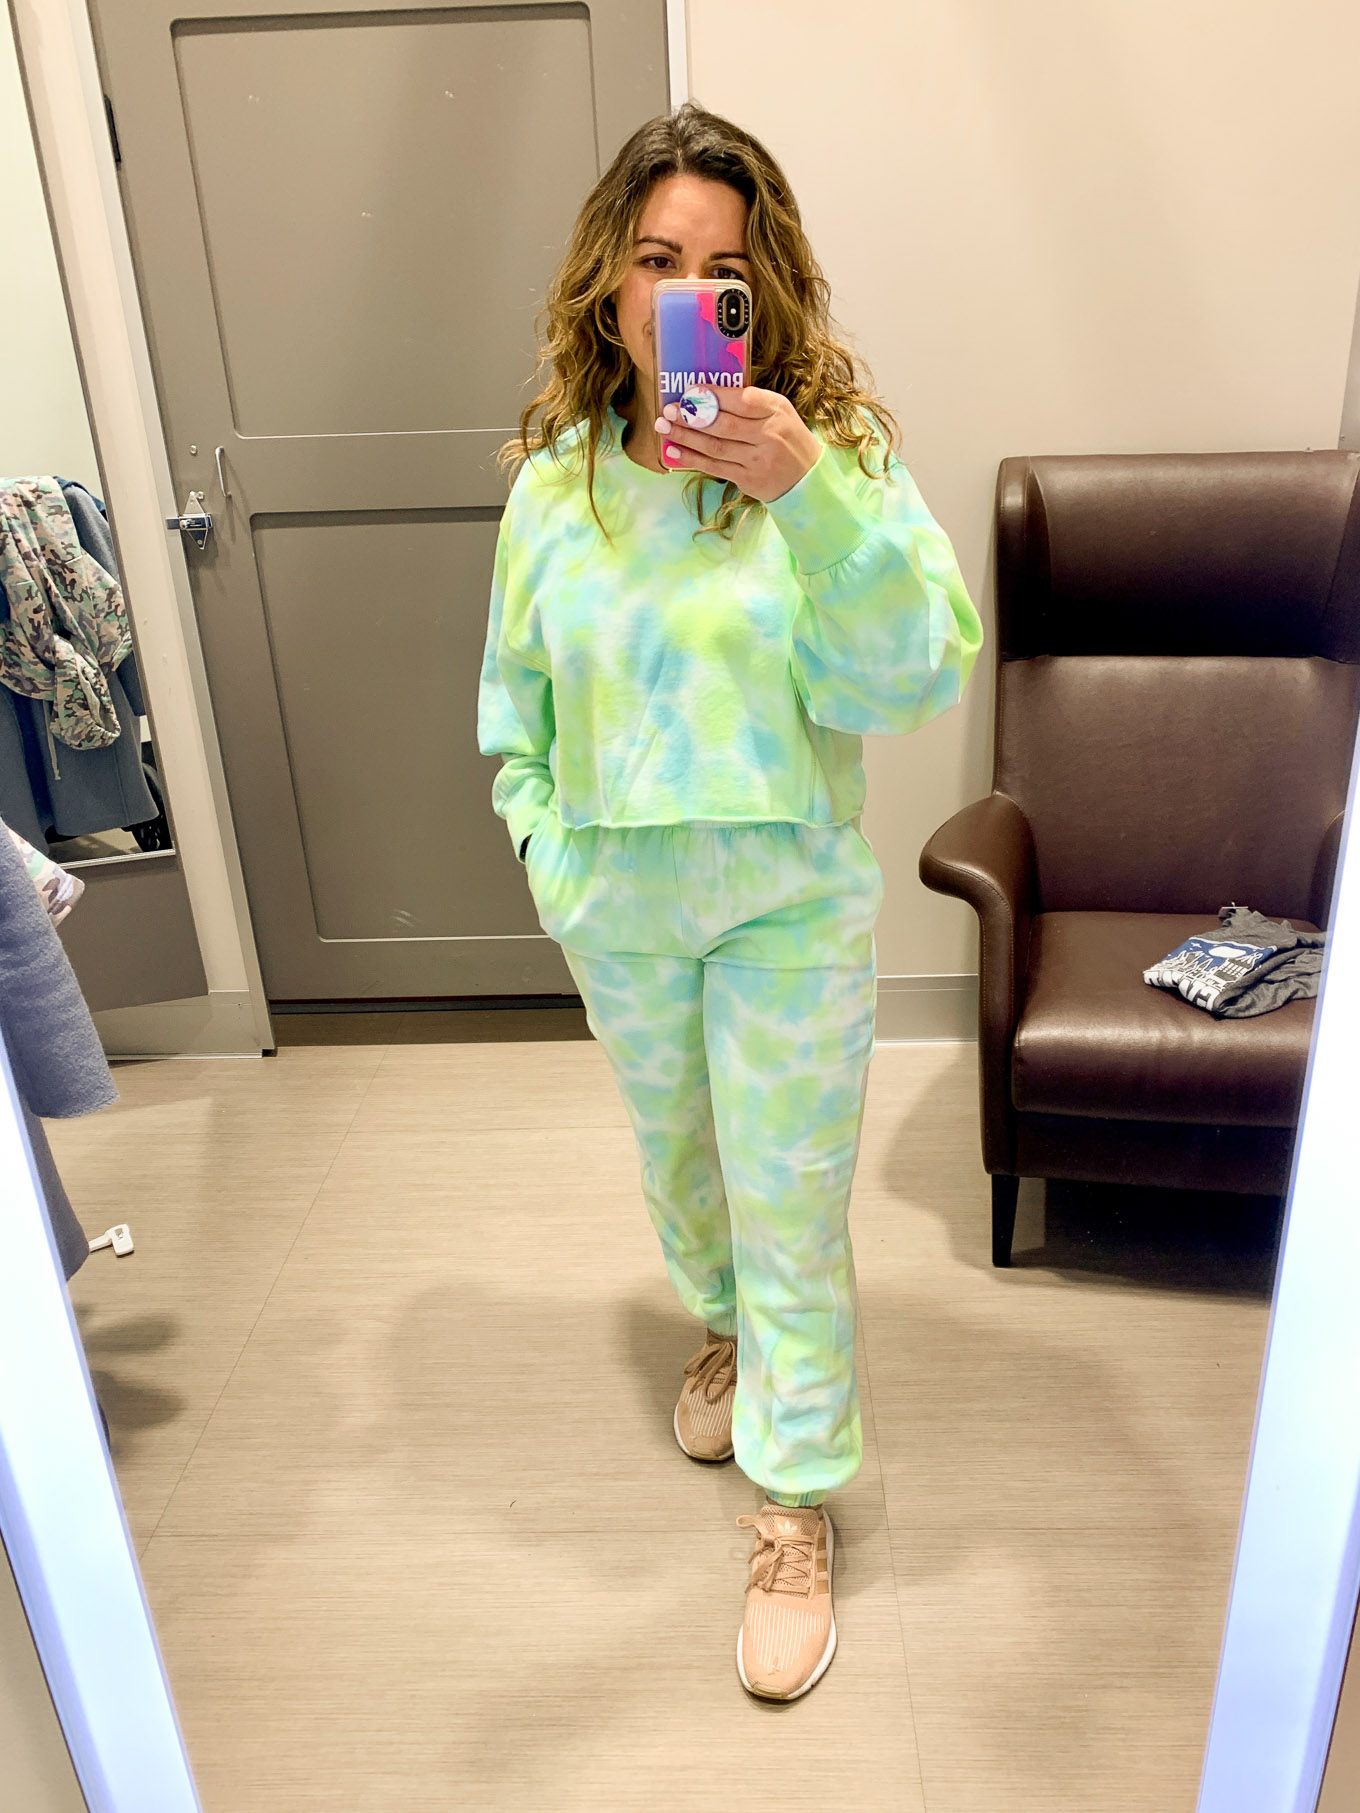 Target Try On by popular Chicago fashion blog, Glass of Glam: image of a woman wearing Target Women's Plus Size Tie-Dye Split Neck Cropped Sweatshirt and Target Women's Tie-Dye Split Neck Cropped Sweatshirt.